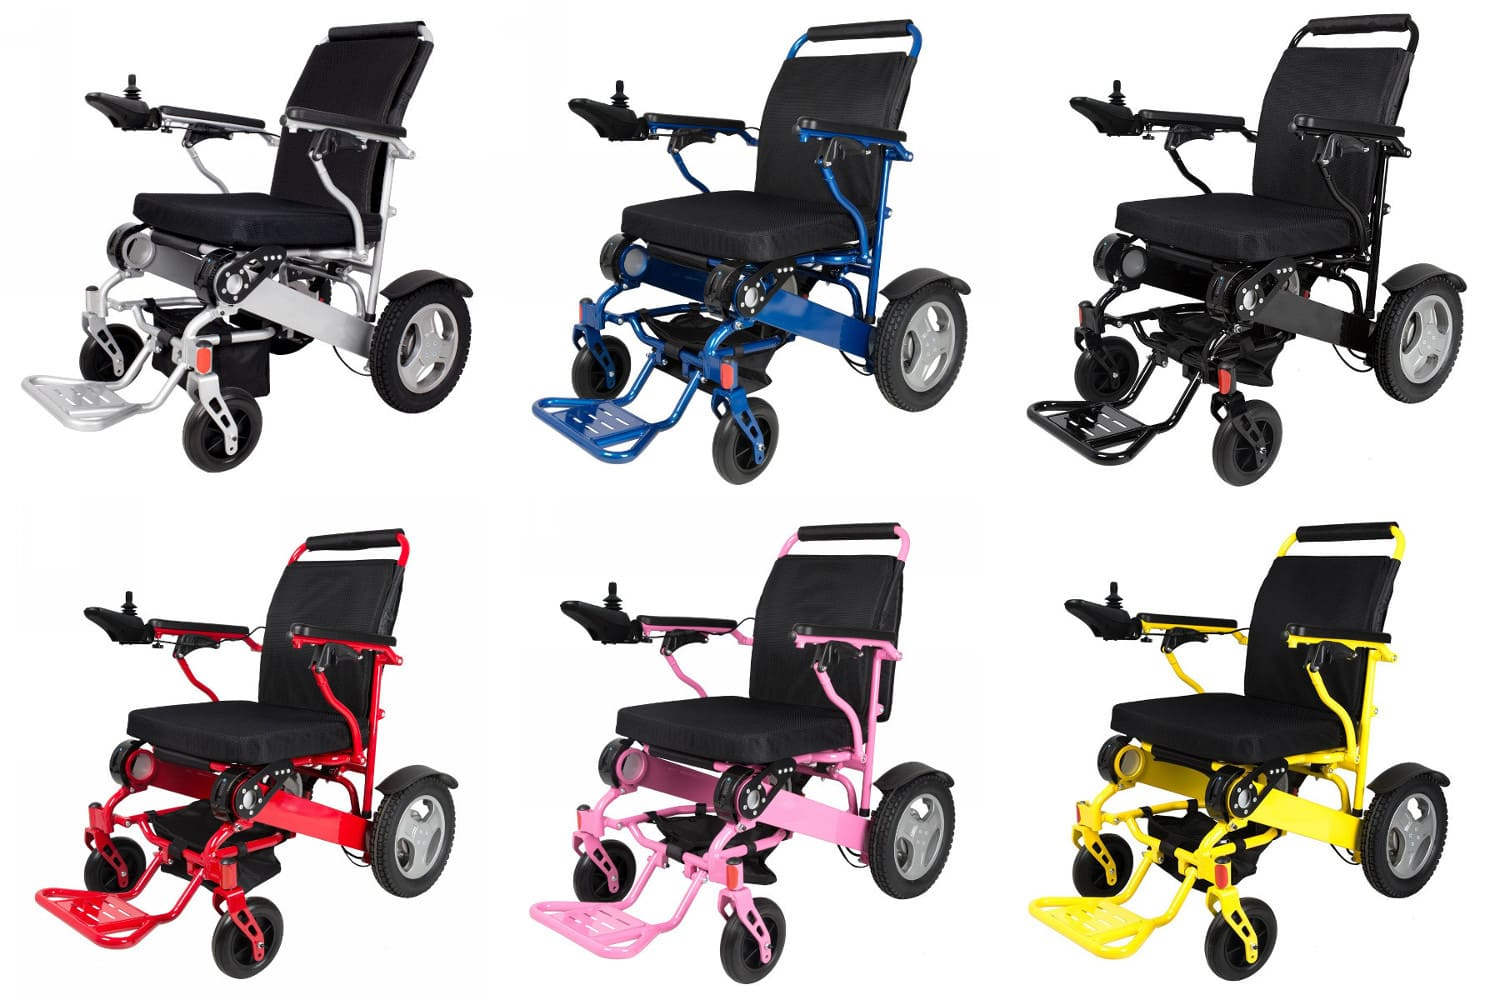 Powered Wheel Chair colors: Silver, Blue, Black, Red, Pink, Yellow